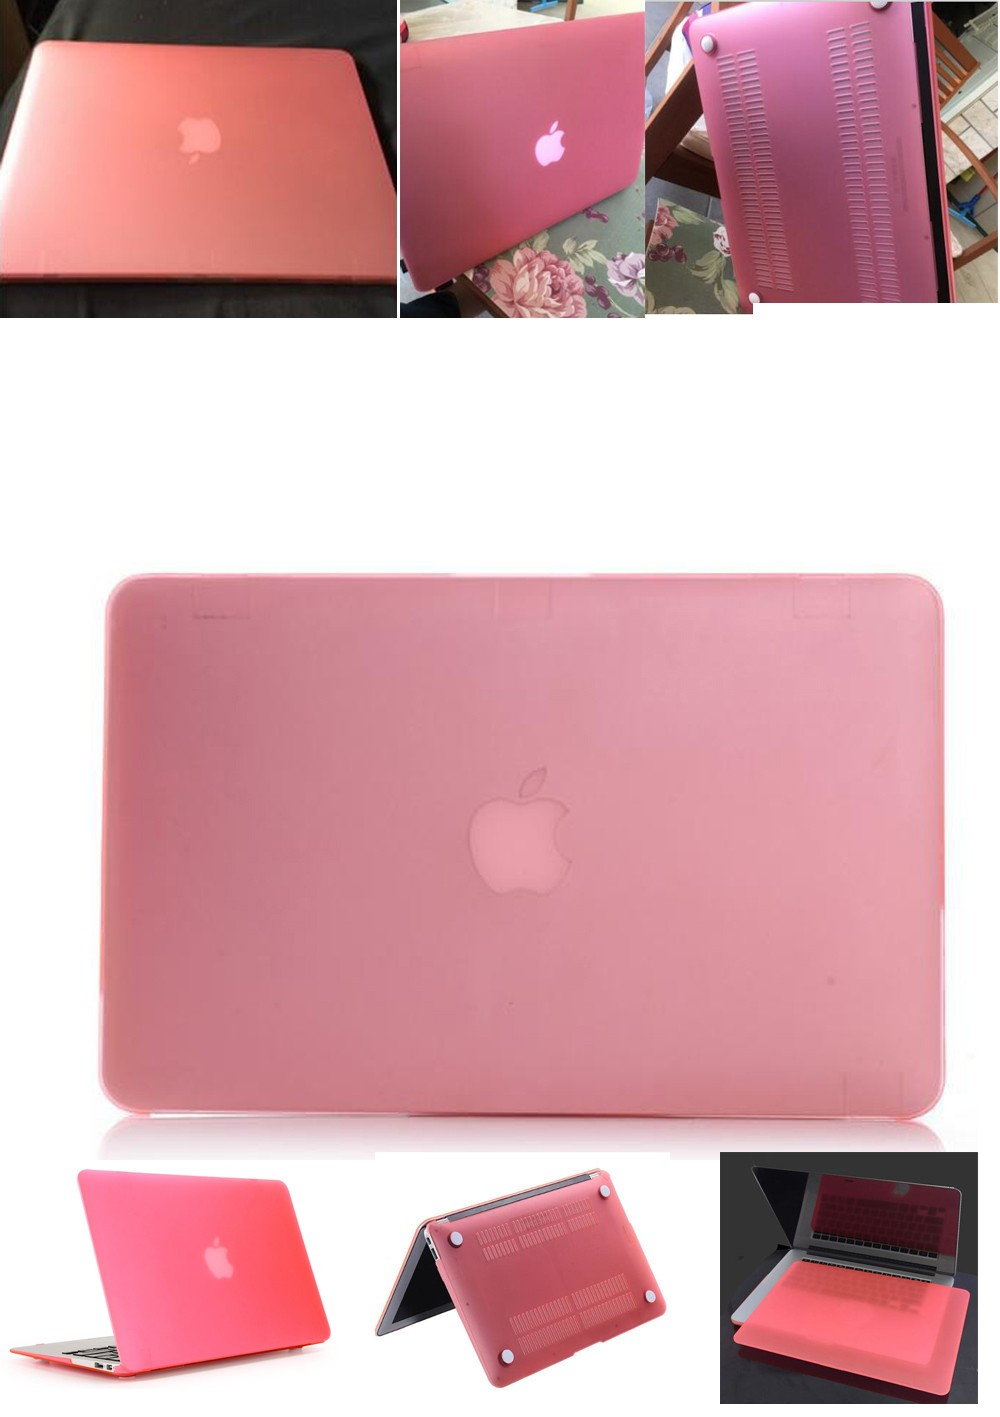 Frost Matte Laptop Case Protective Shell For Apple Mac Macbook Pro Moko Sweet Lip Creme Nude Metal Click Here Retina 12 13 154 Air 11 116 133